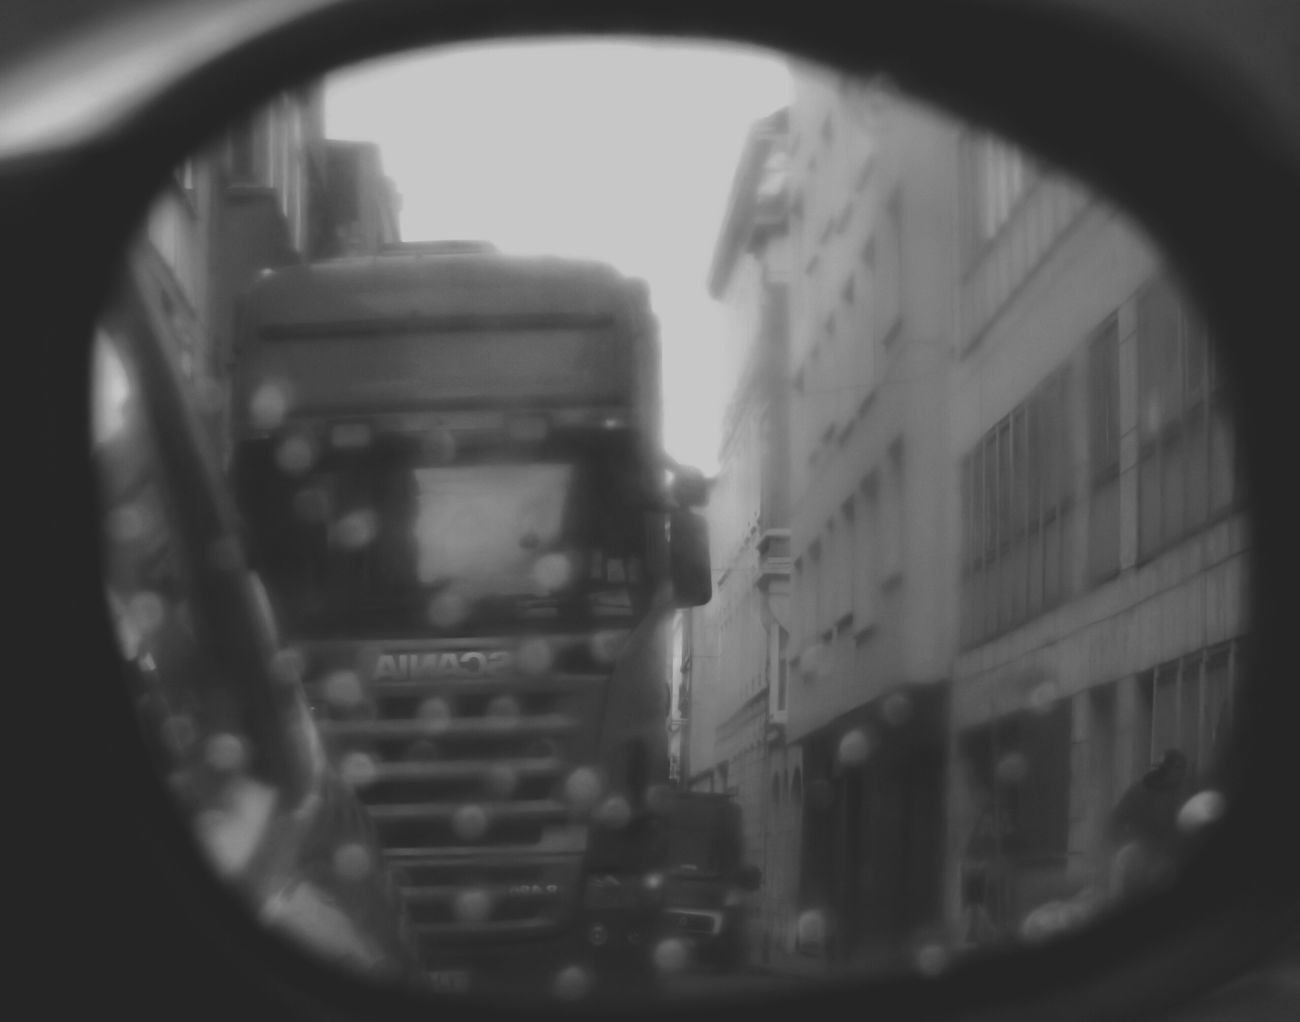 Rearviewmirror Mirror Raindrops Blurred Glitch Truck Car Bnwphotography Black + White Simple Photography Looking Through Window Everybodystreet